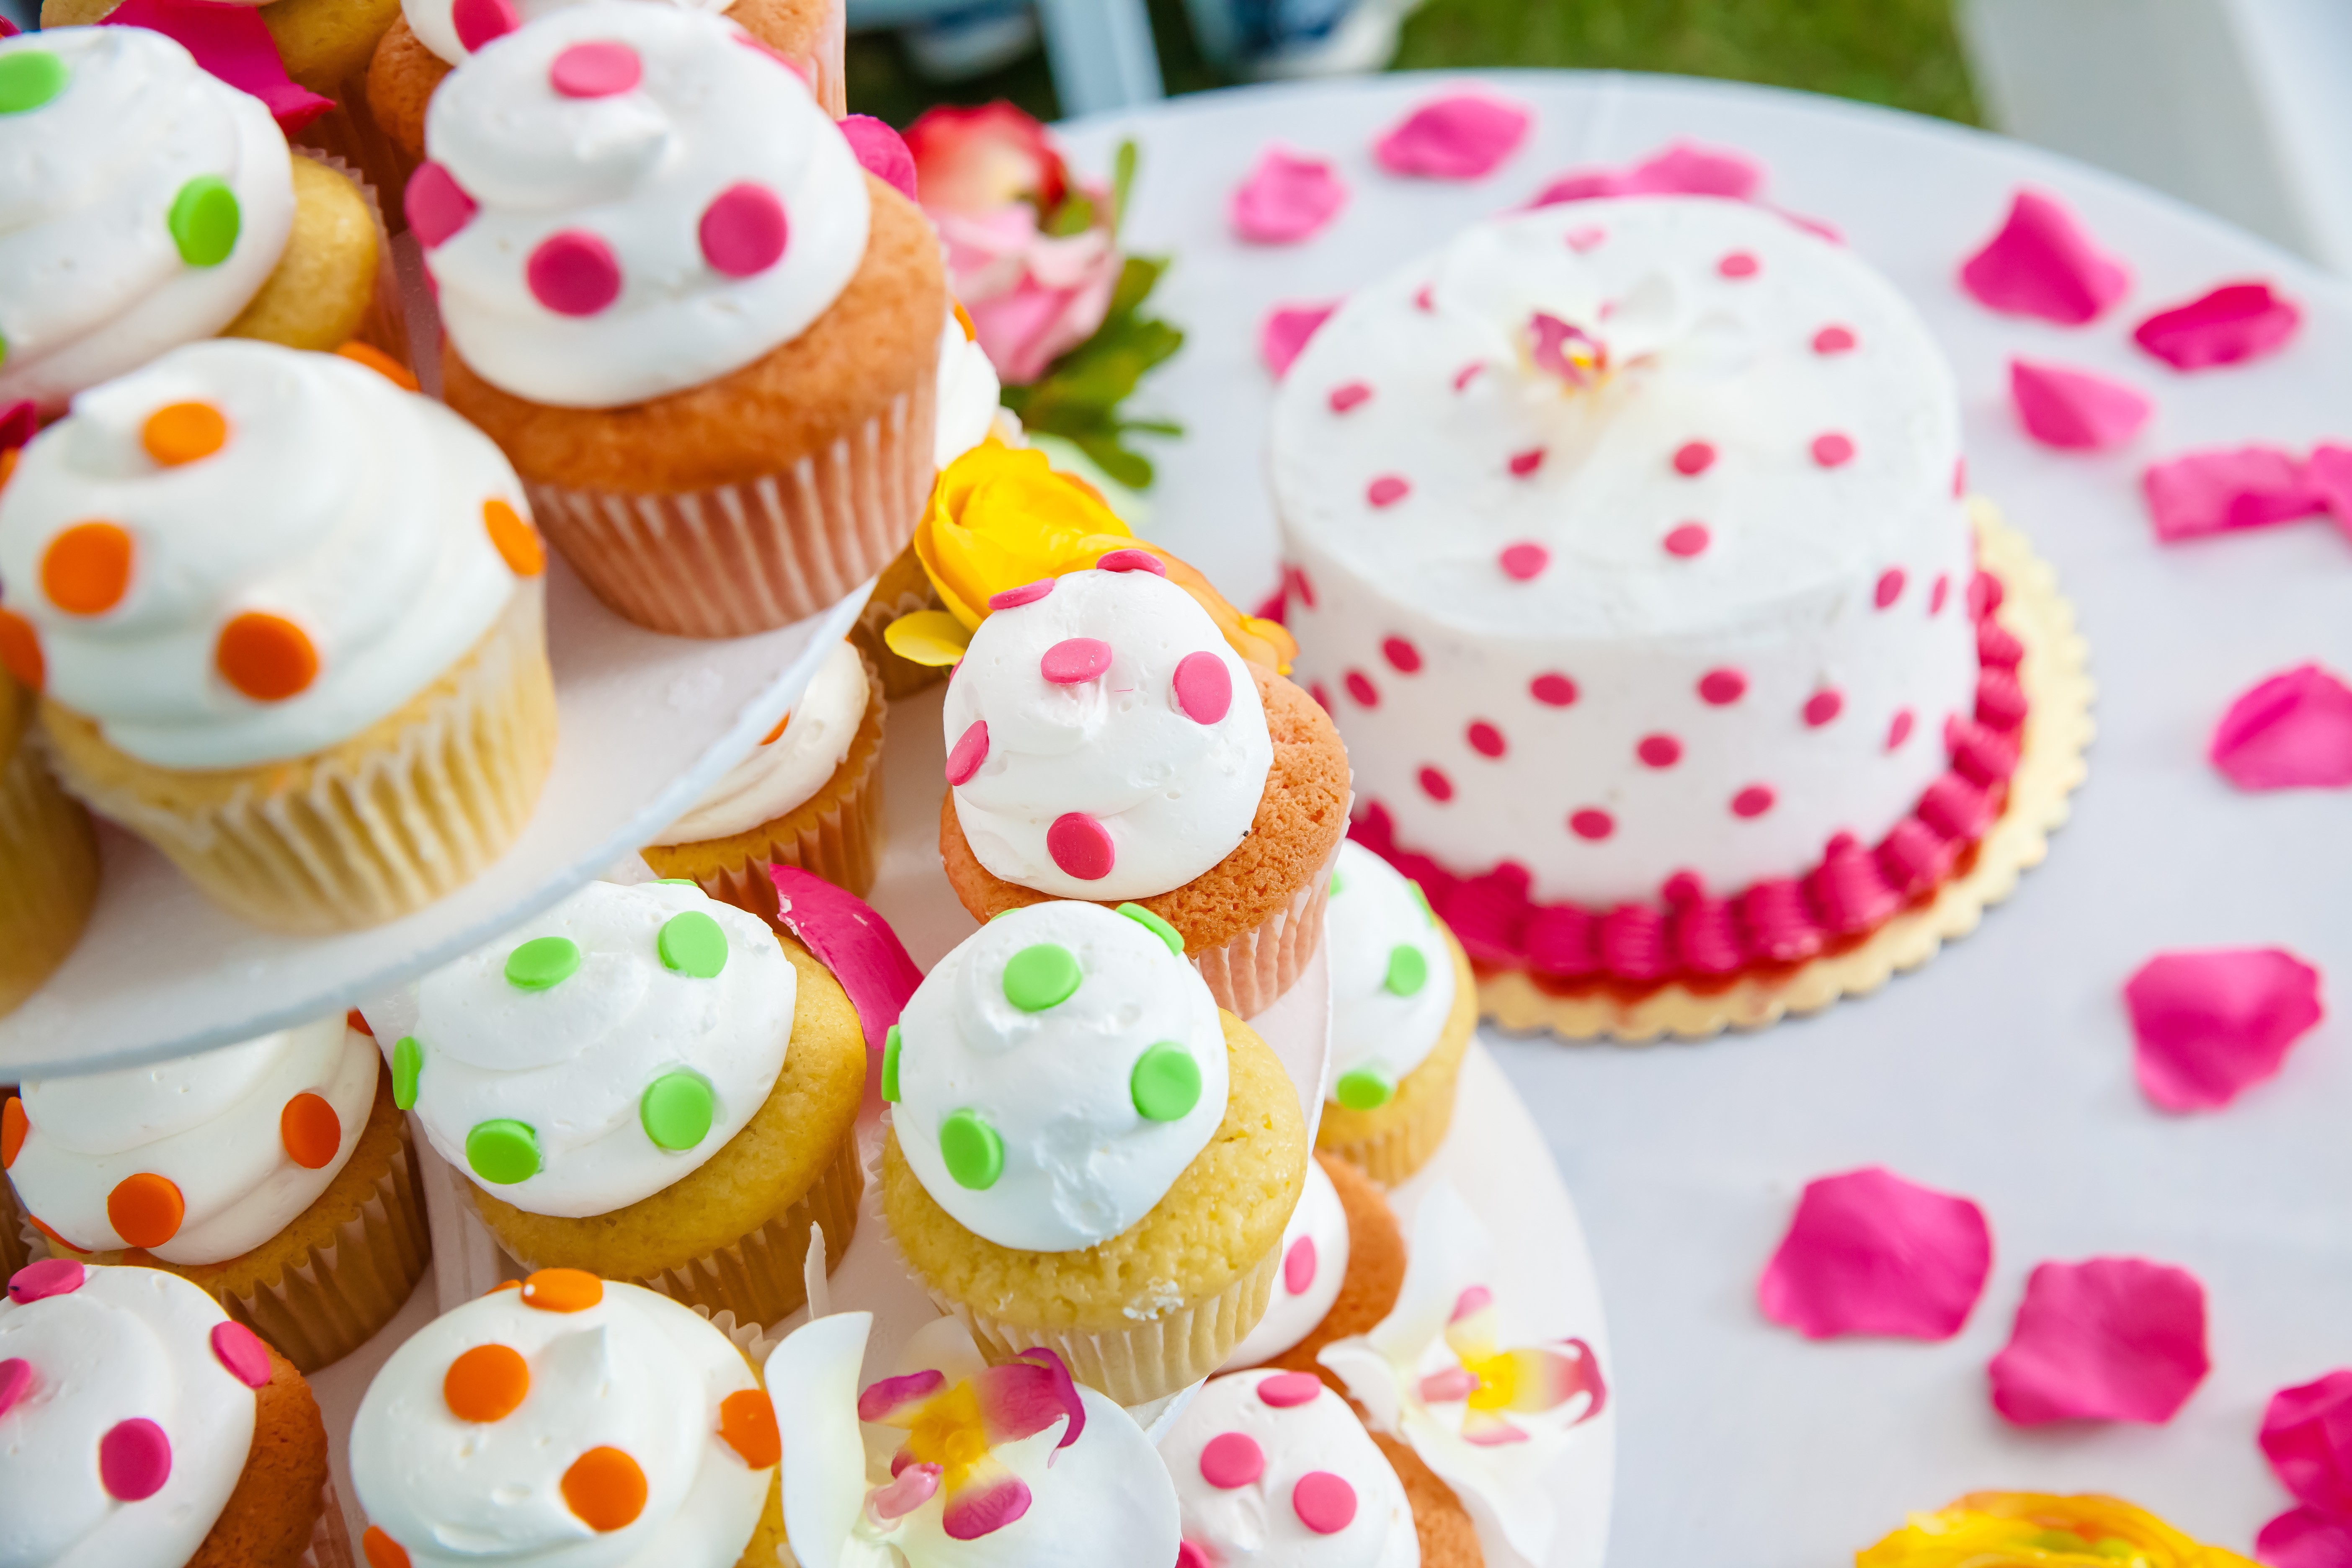 Colorful wedding cupcakes and cake